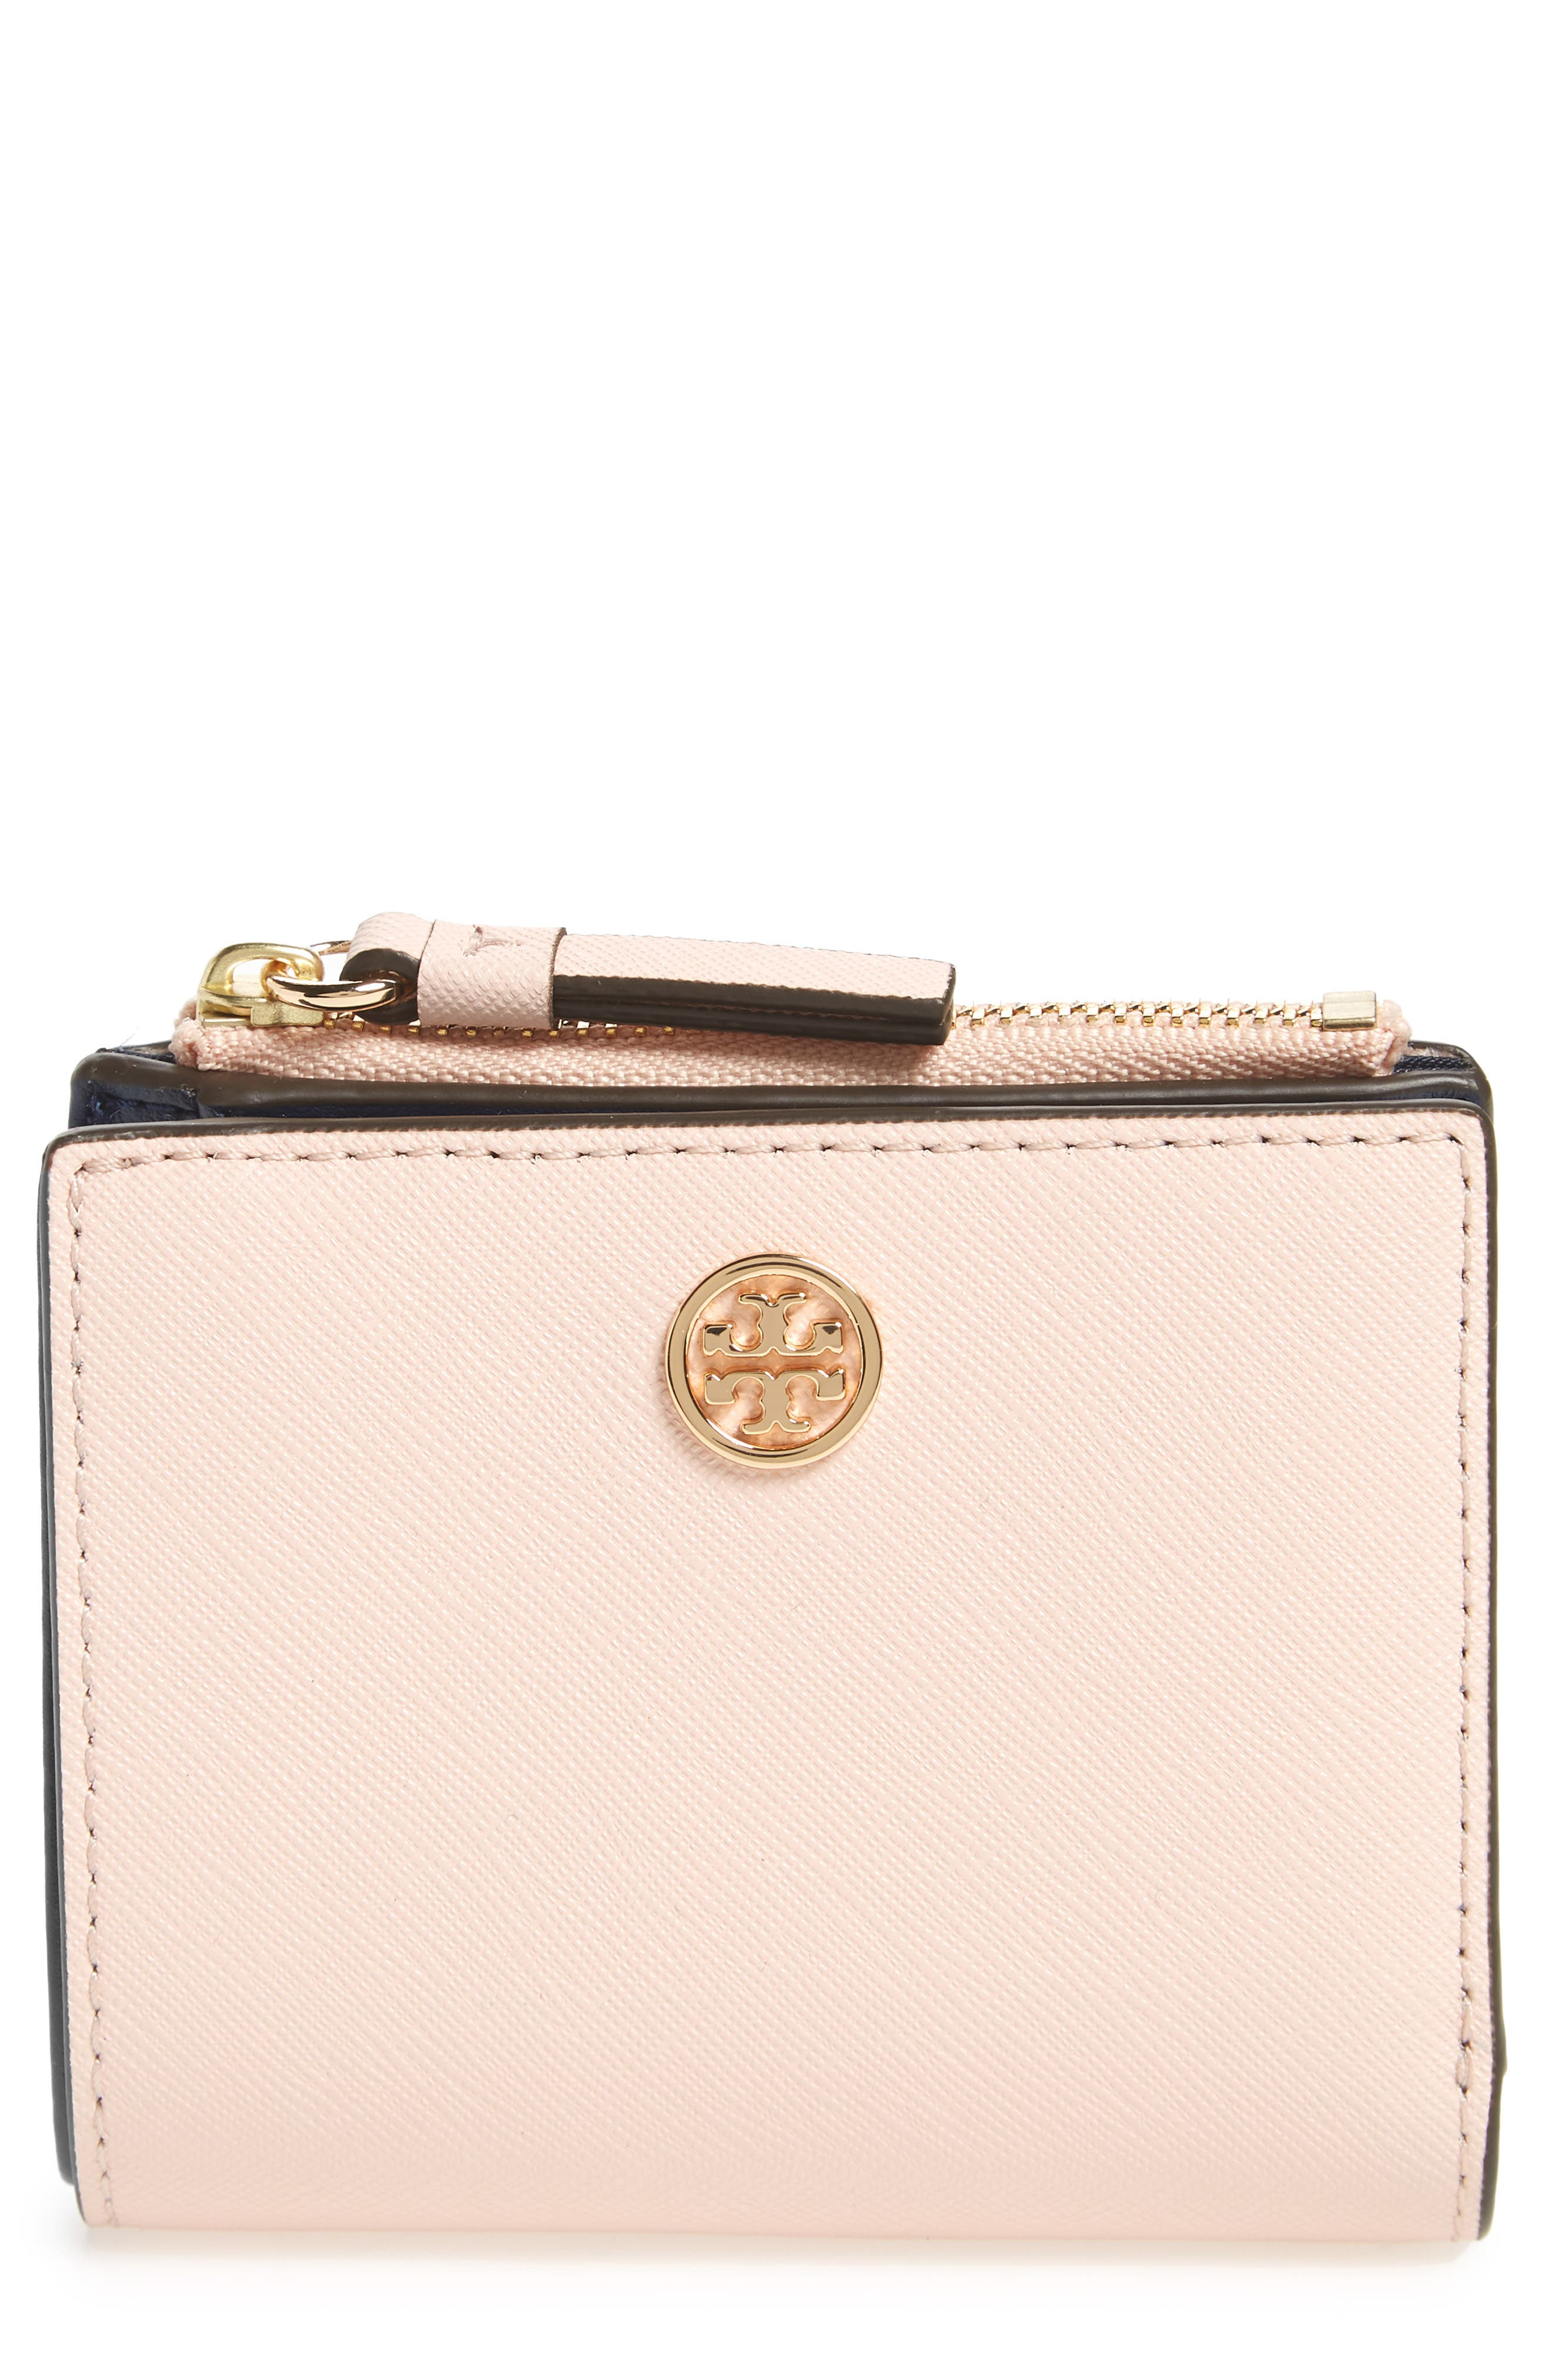 Mini Robinson Wallet Leather Bifold Wallet,                         Main,                         color, Pale Apricot / Royal Navy